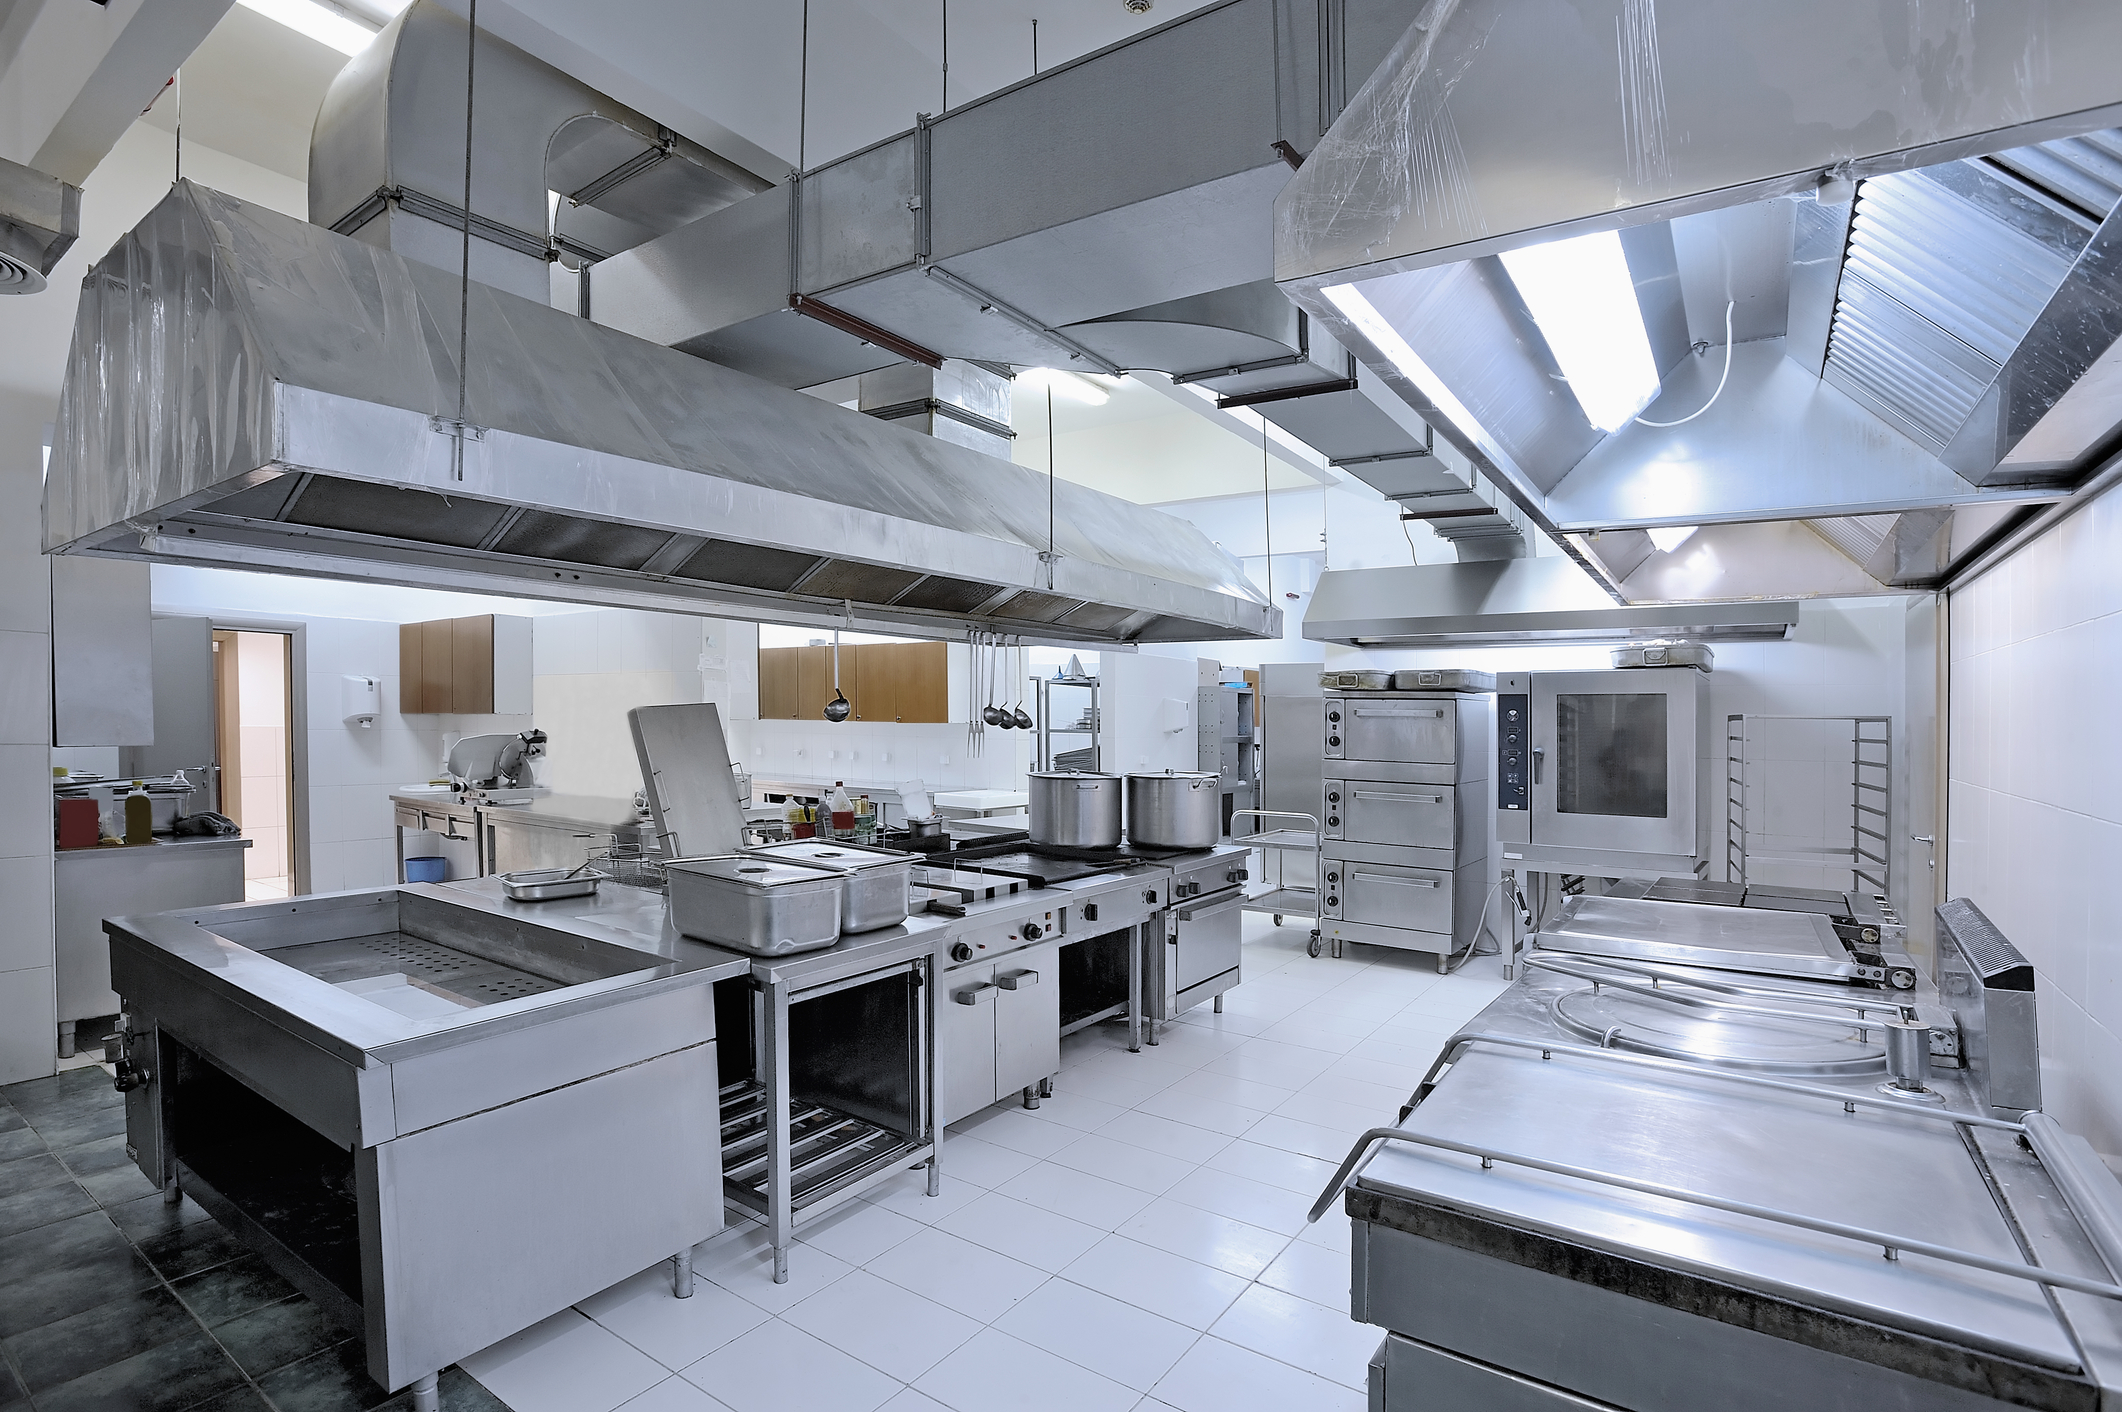 Commercial Kitchen Design Best 5 Important Things You Should Know Caterline